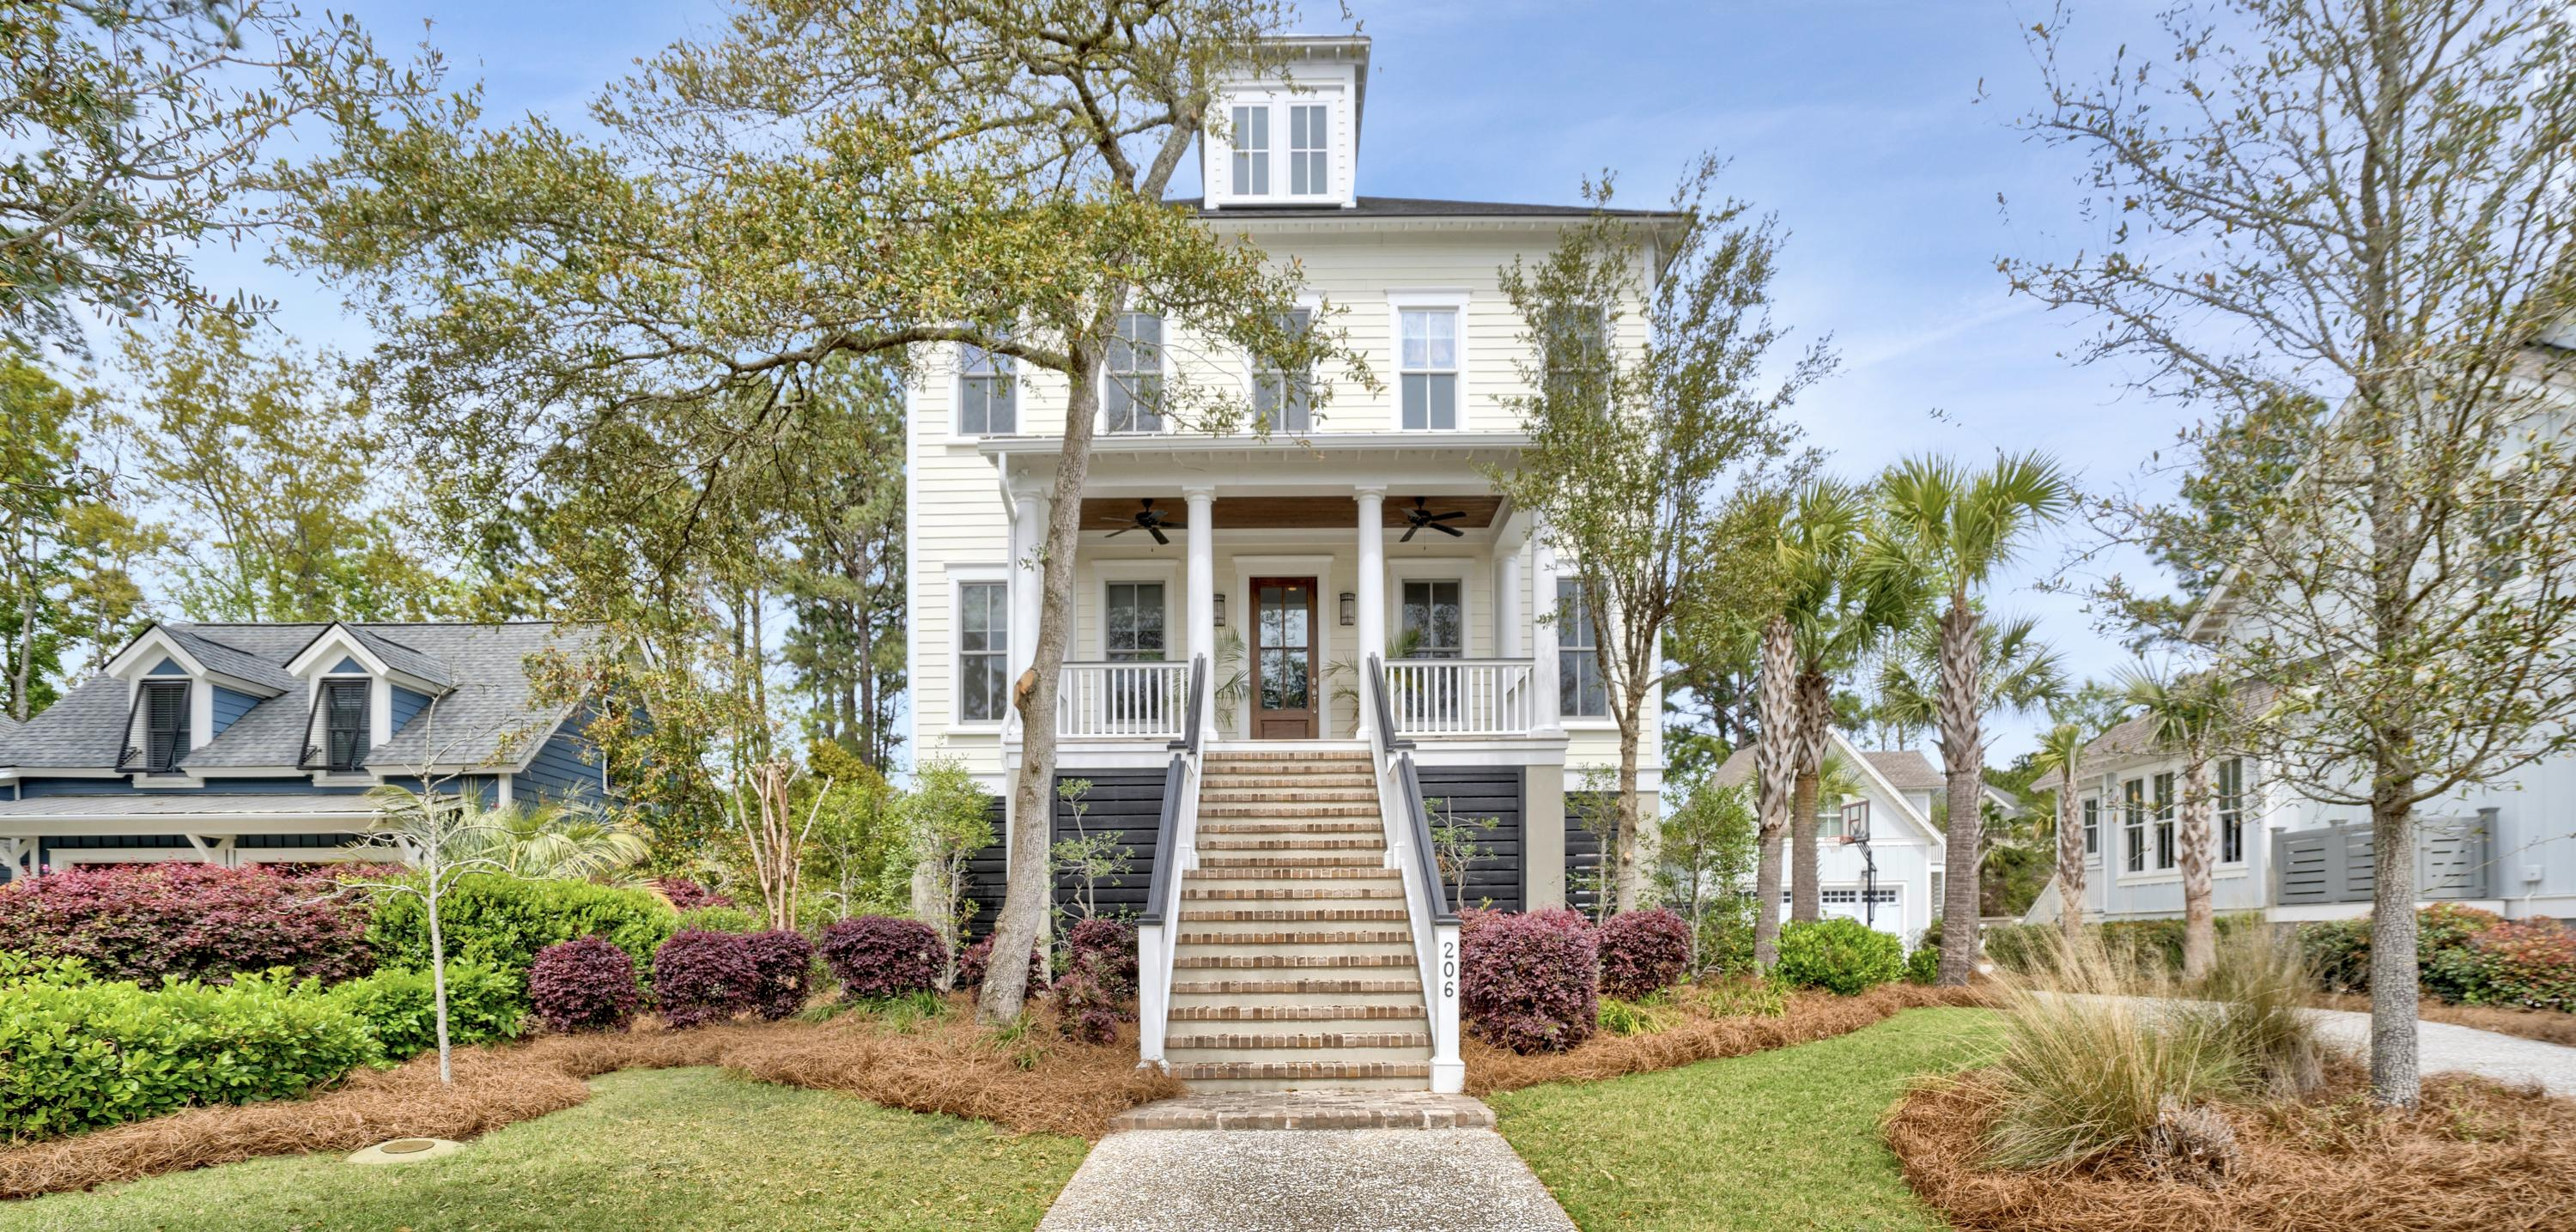 206 Ferryman Lane Charleston, SC 29492